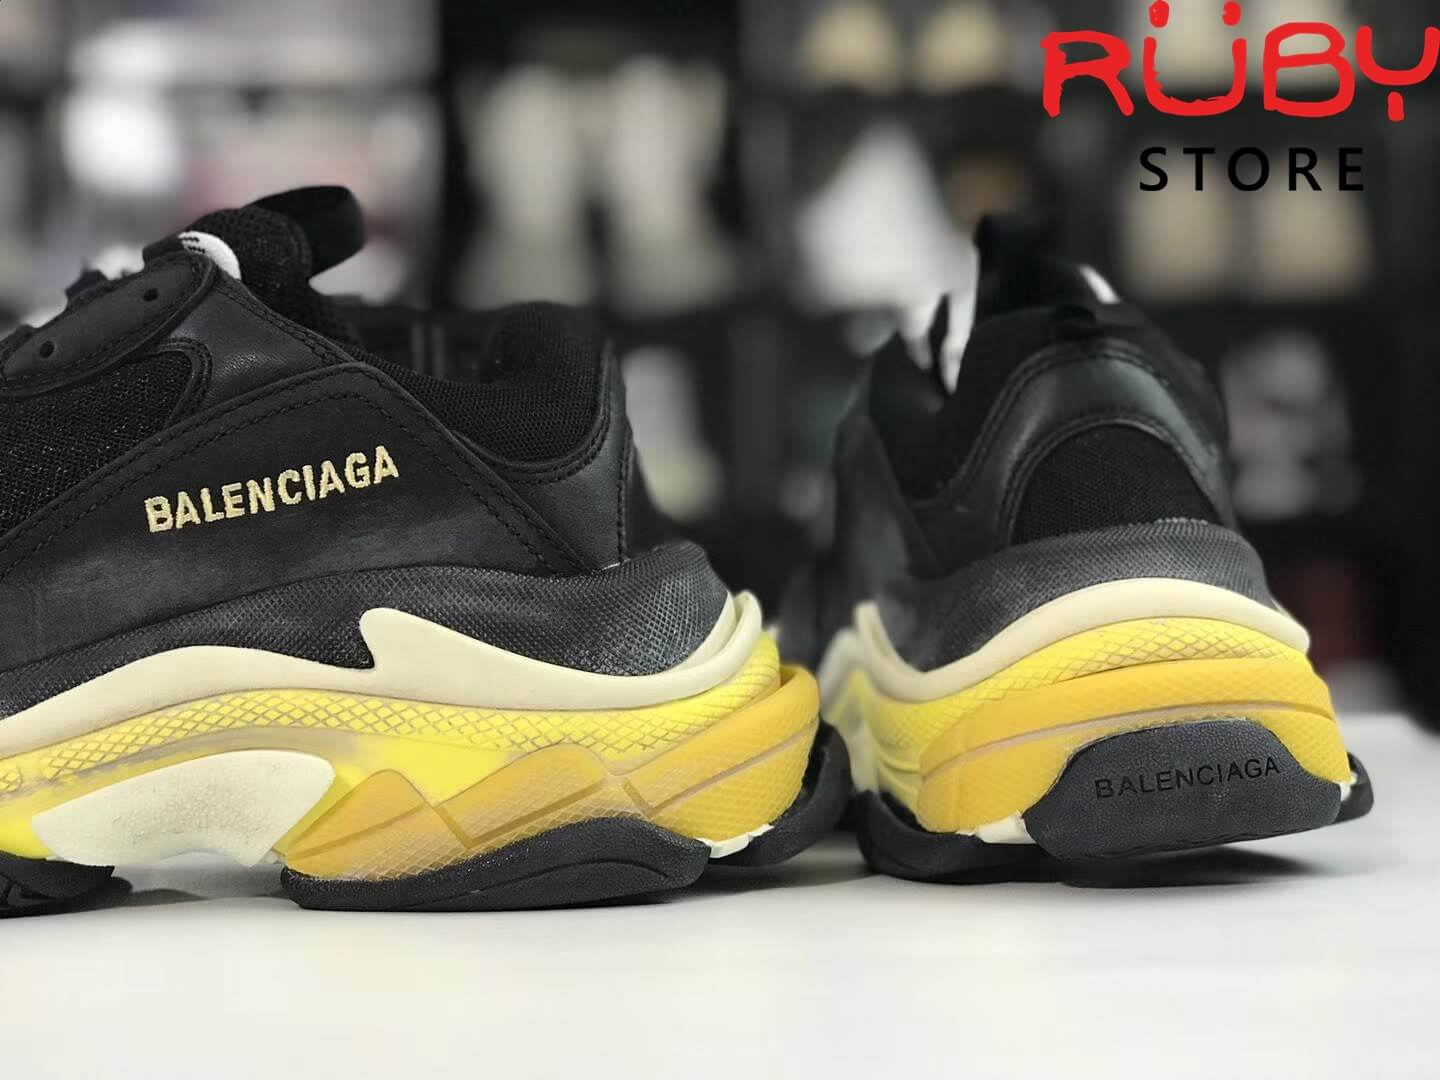 giày-balenciaga-triple-s-replica-11-best-like-authentic-99 (12)